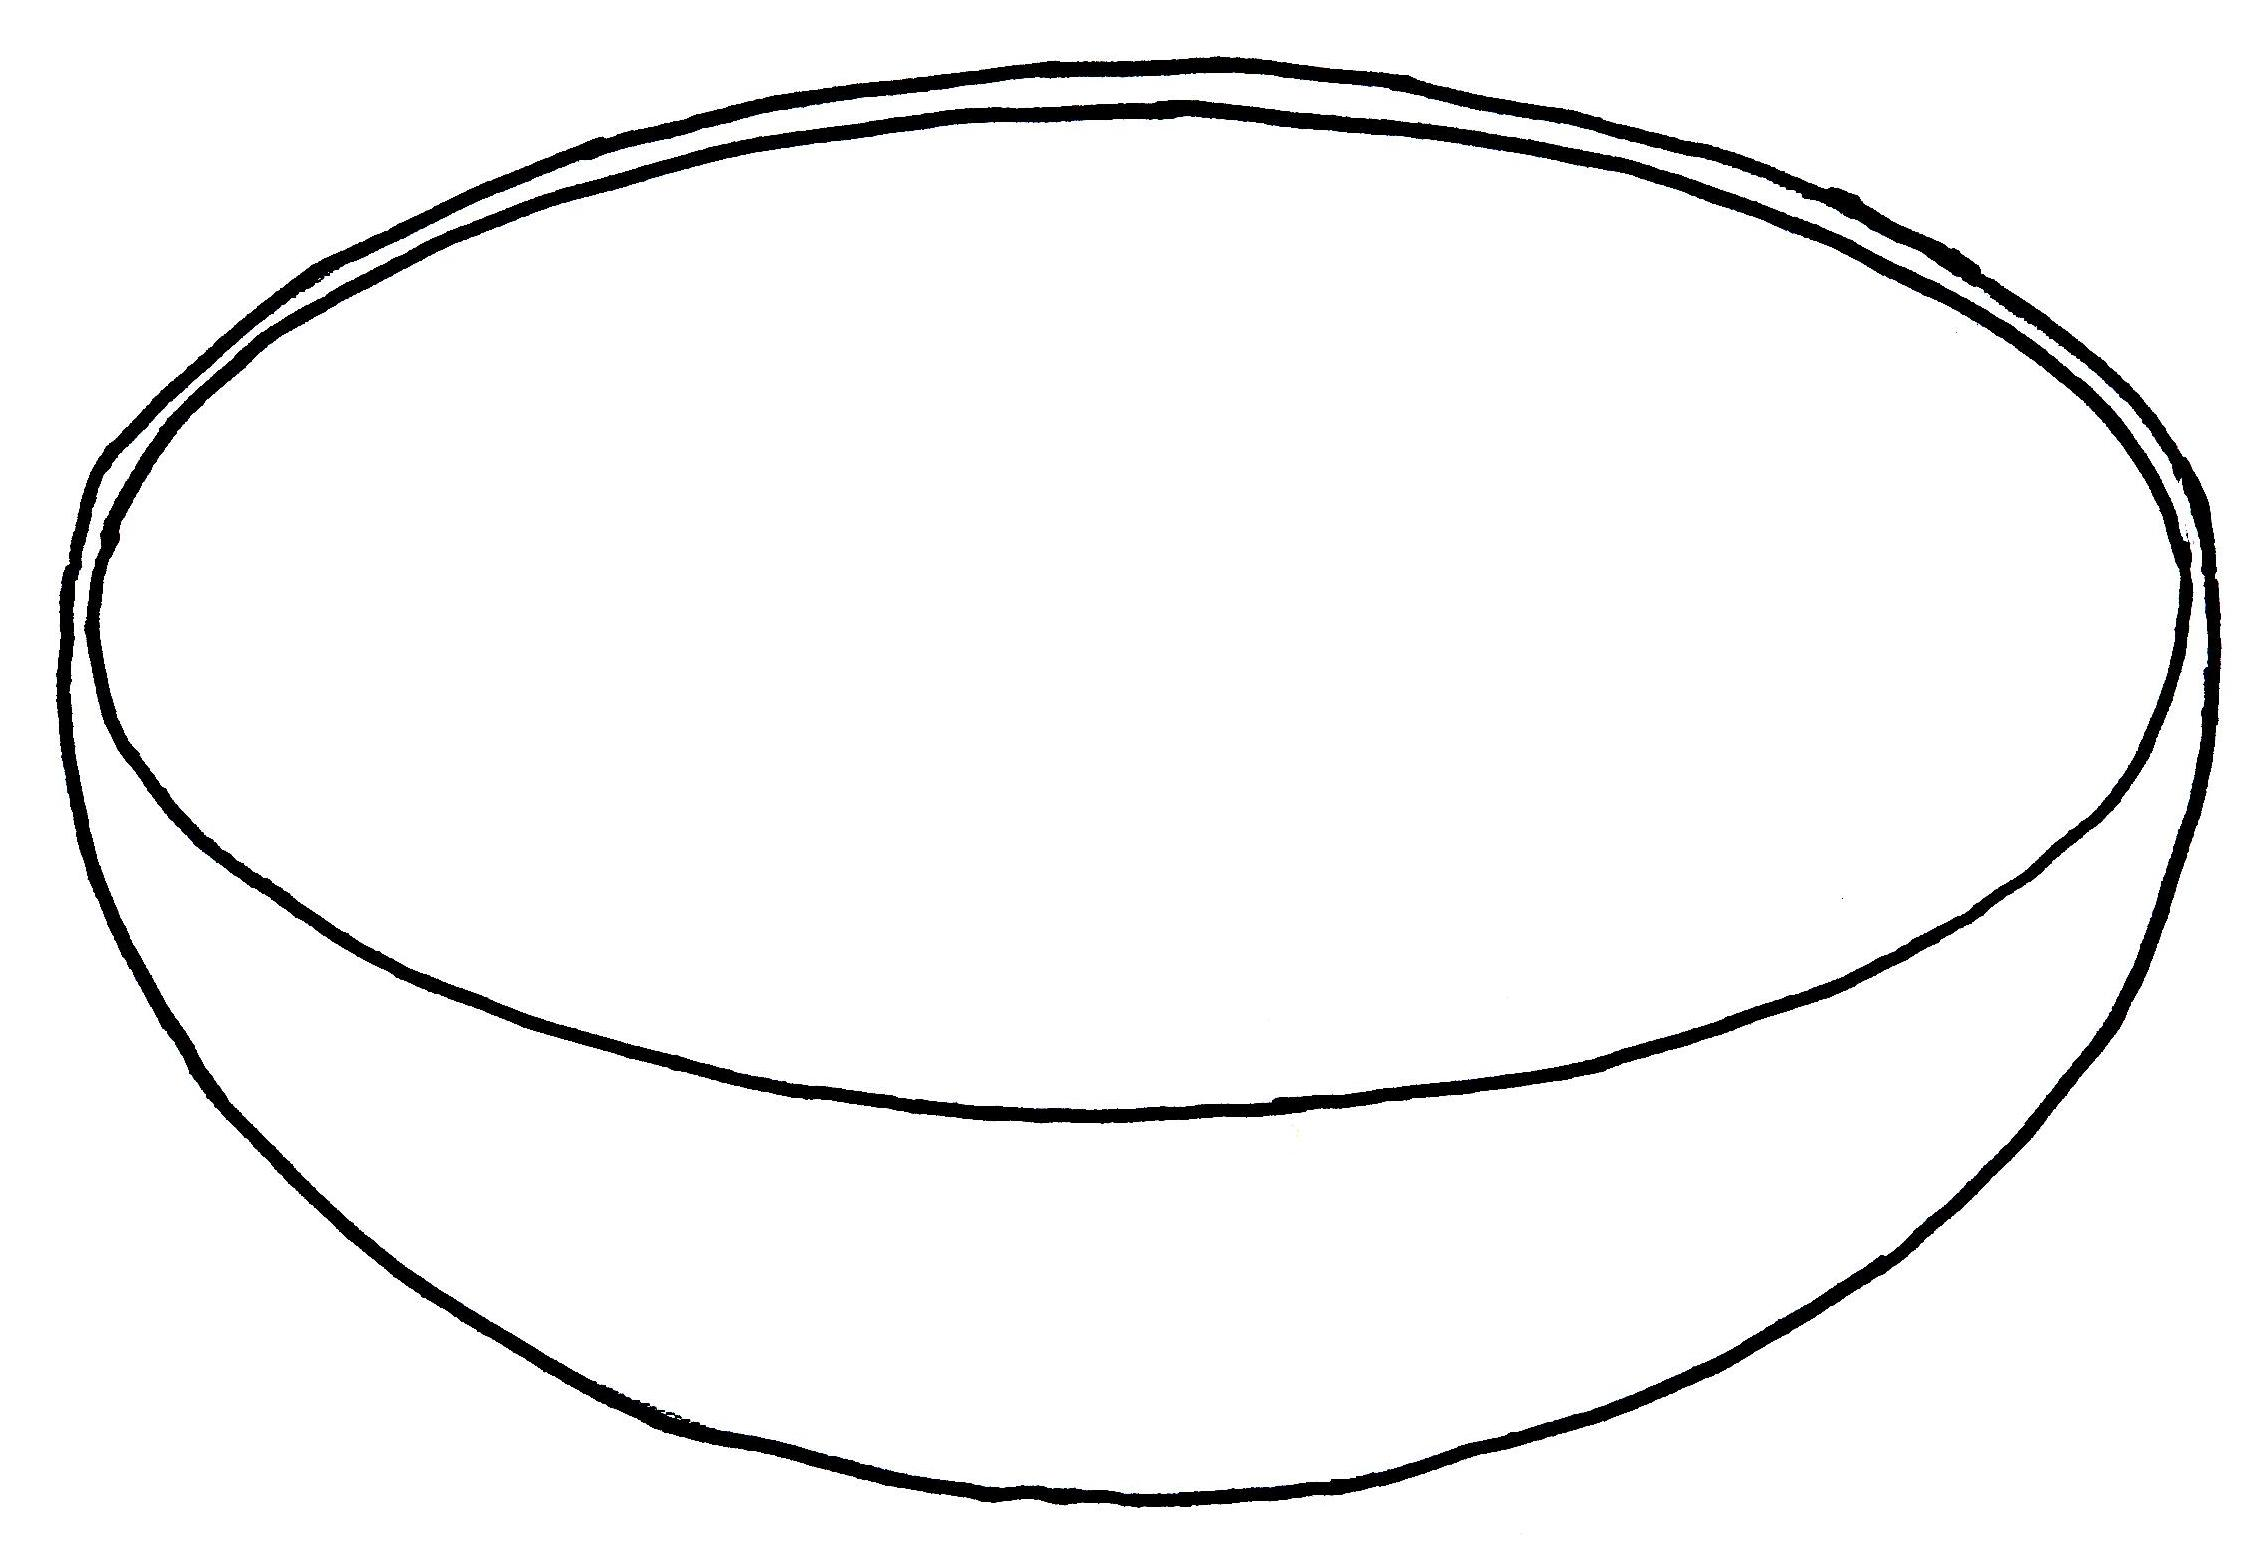 bowl of cereal coloring pages - photo#8